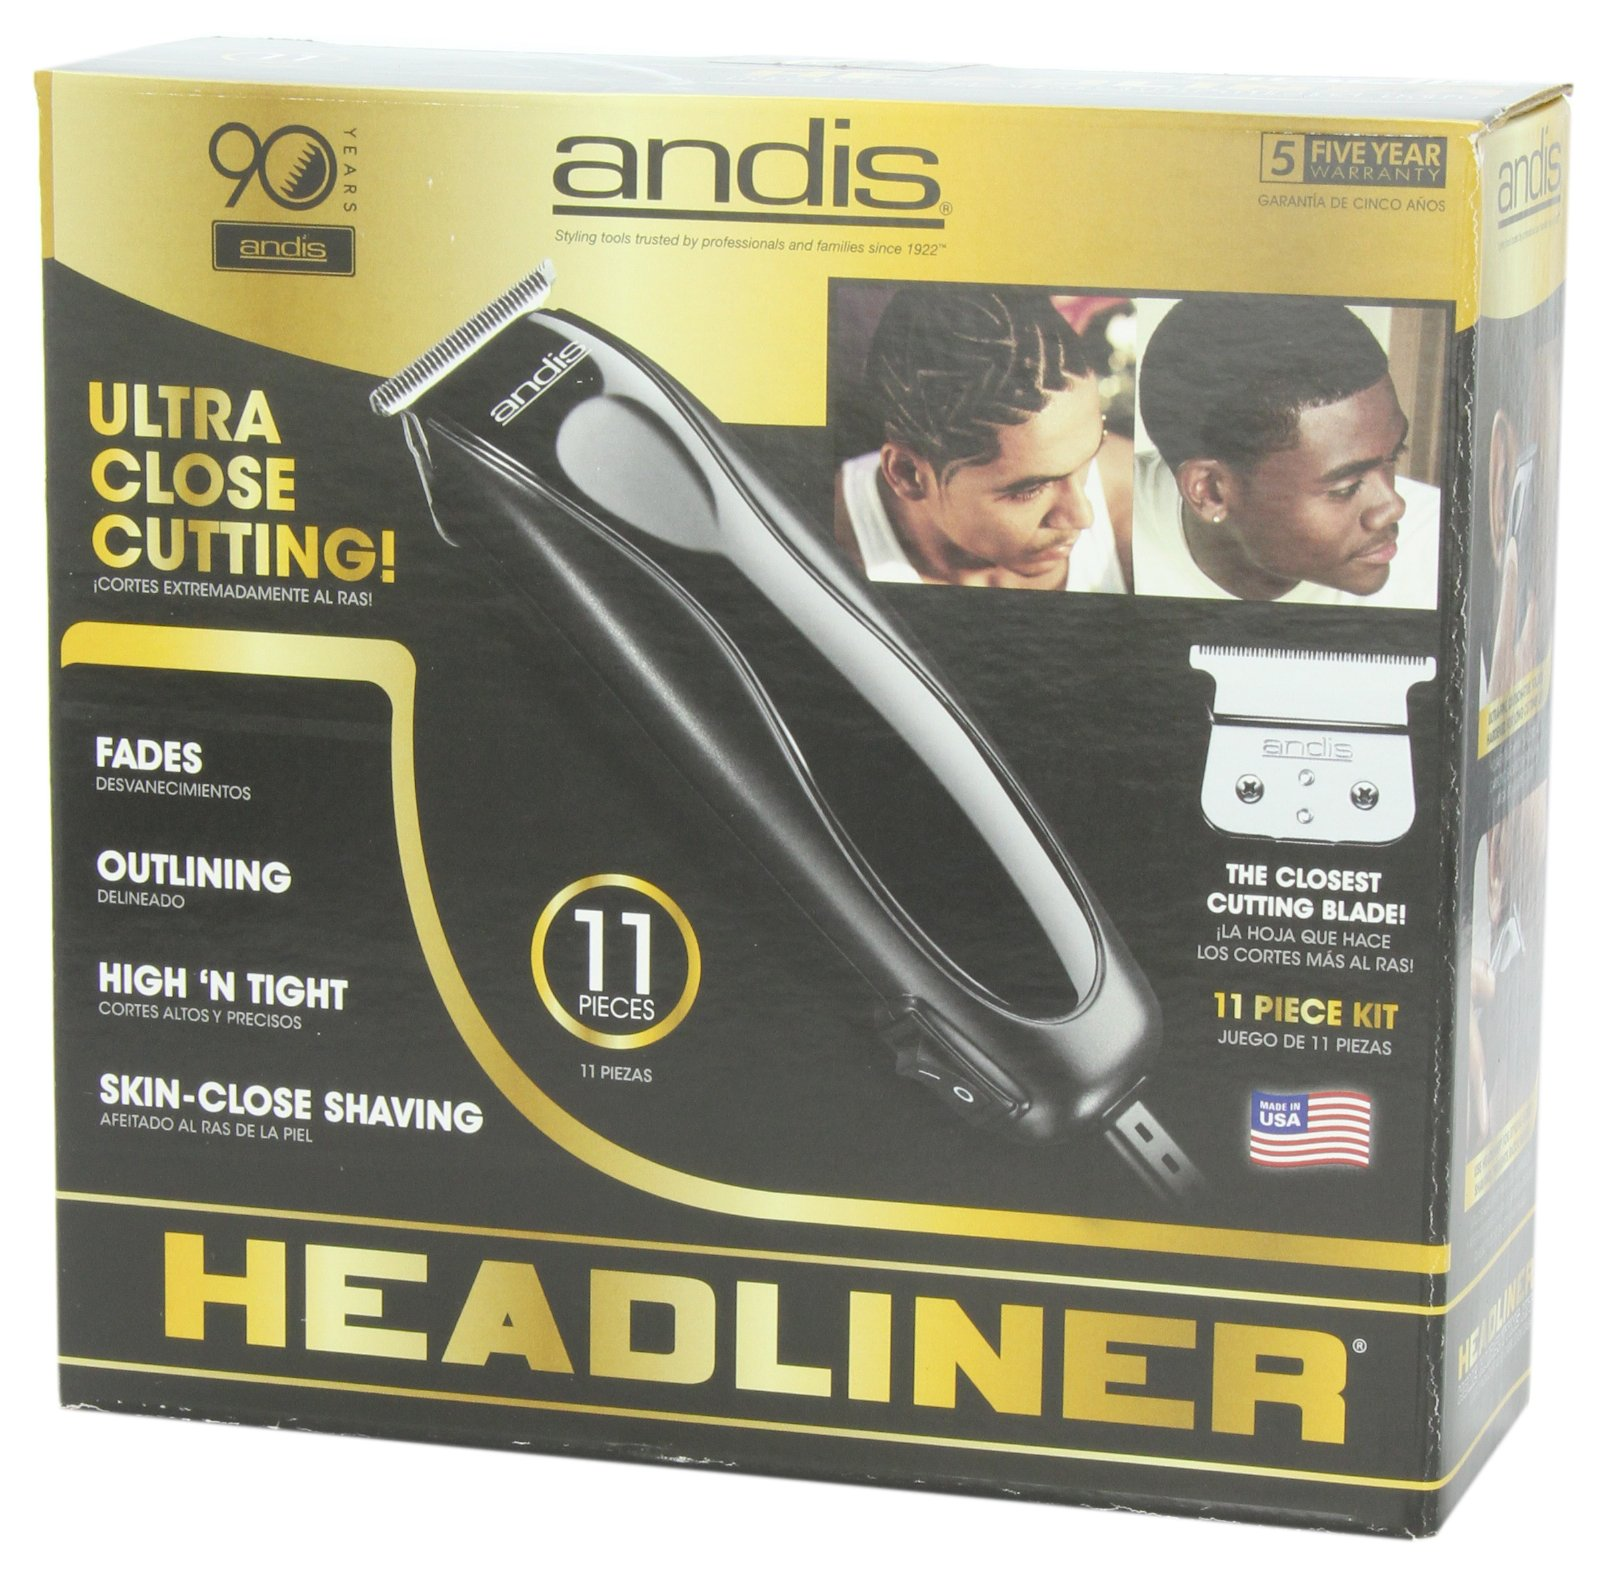 Andis Skin-Close Headliner 11-Piece Hair Clipper/Beard Trimmer Kit, Black, Model LS-2 (29775) by Andis (Image #7)